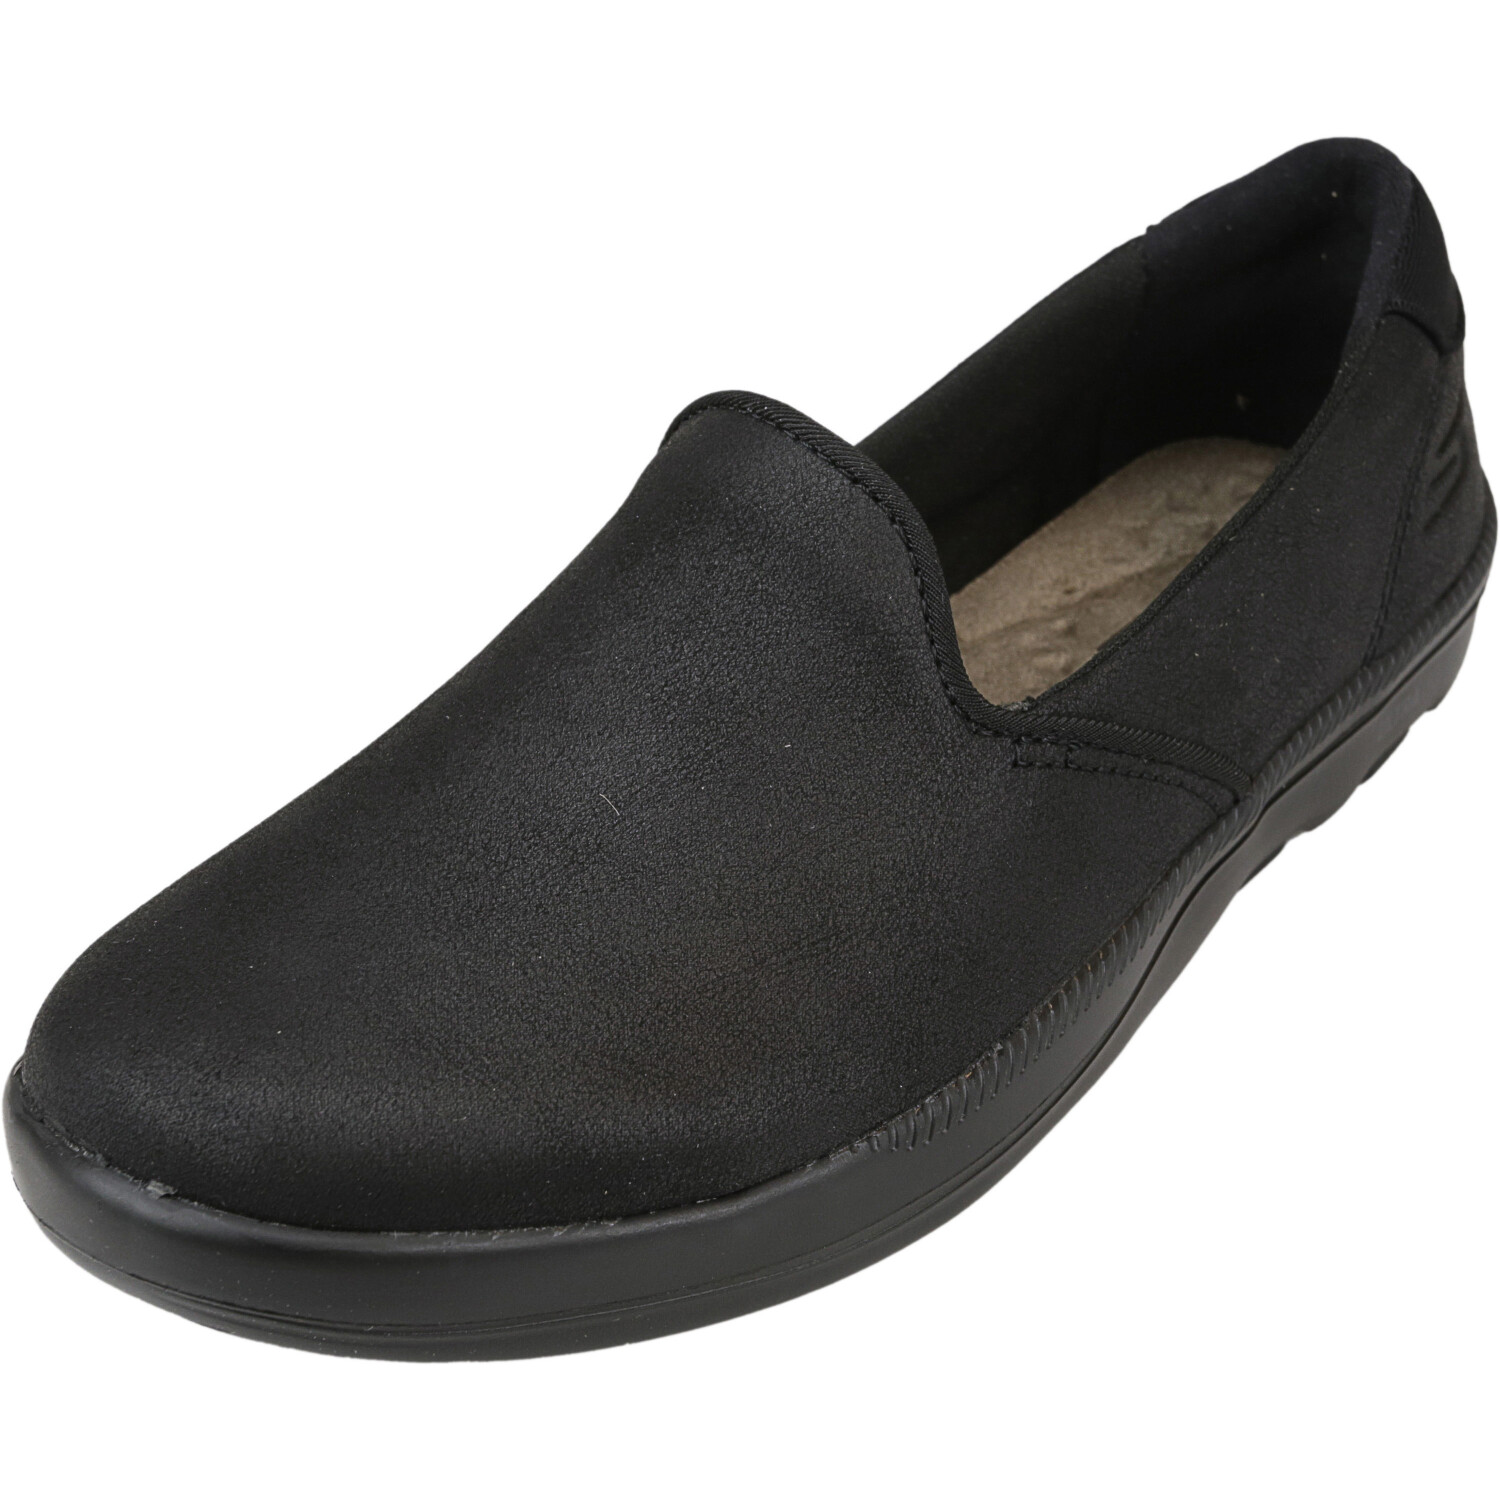 Skechers Women's On-The-Go Bliss - Empress Black Ankle-High Fabric Slip-On Shoes 5.5M